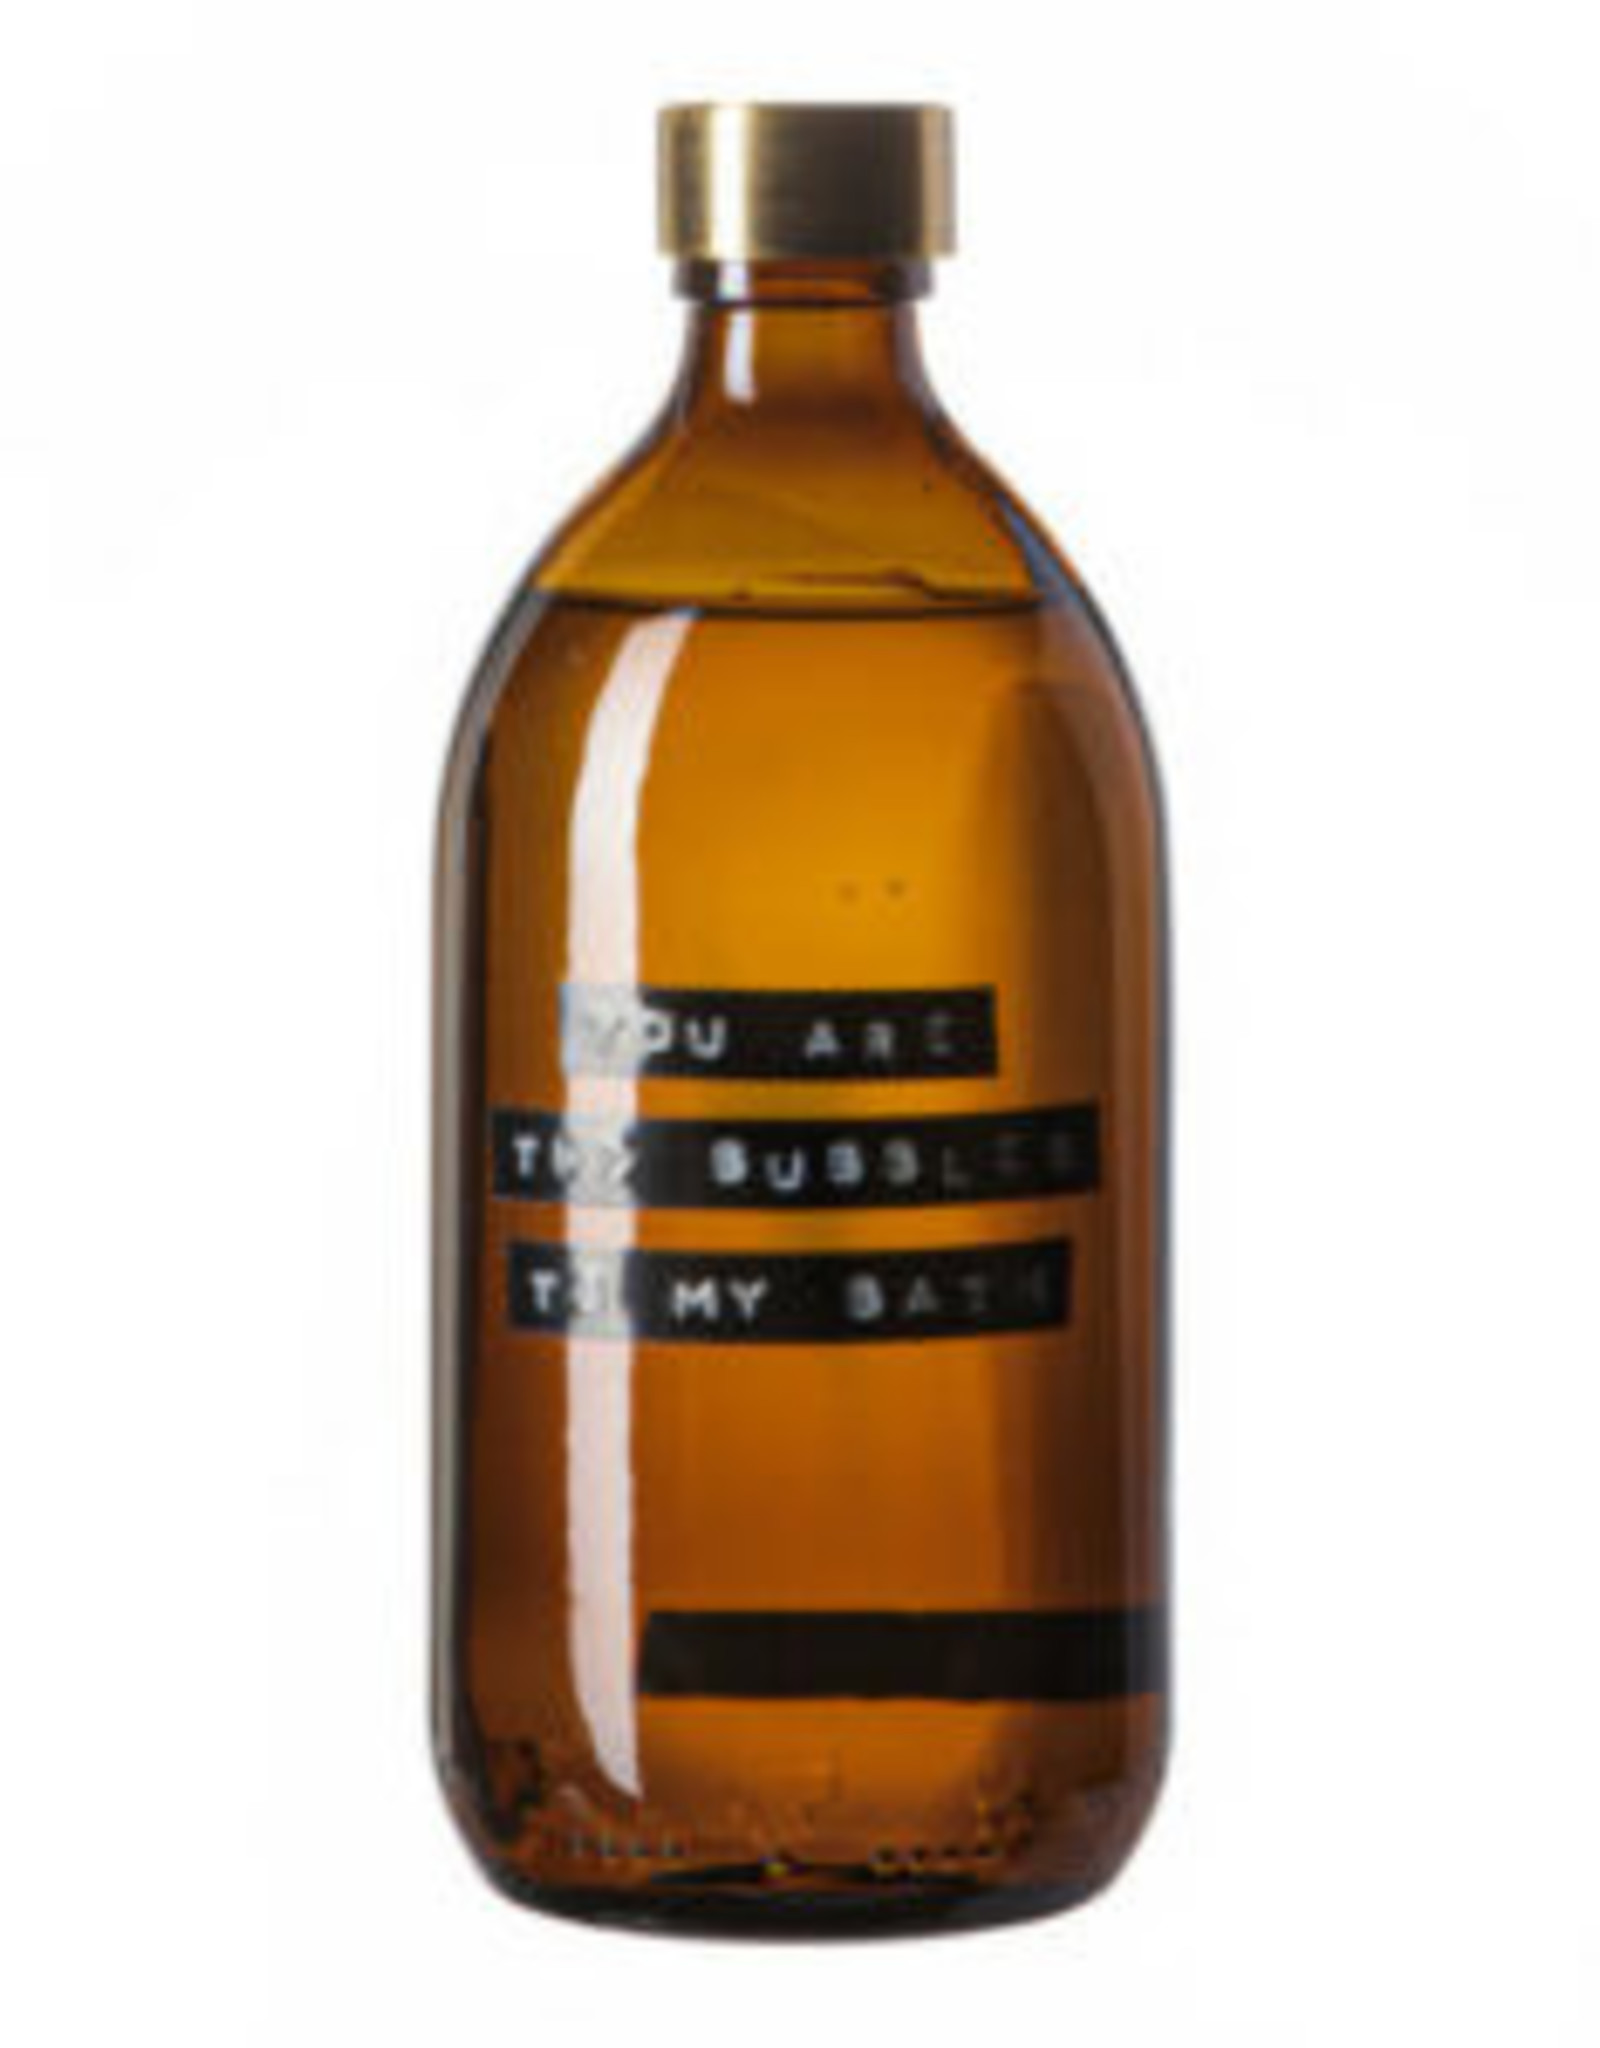 wellmark Wellmark Bad zeep bamboo -500ml bruin glas - messing 'You are the bubbles to my bath'